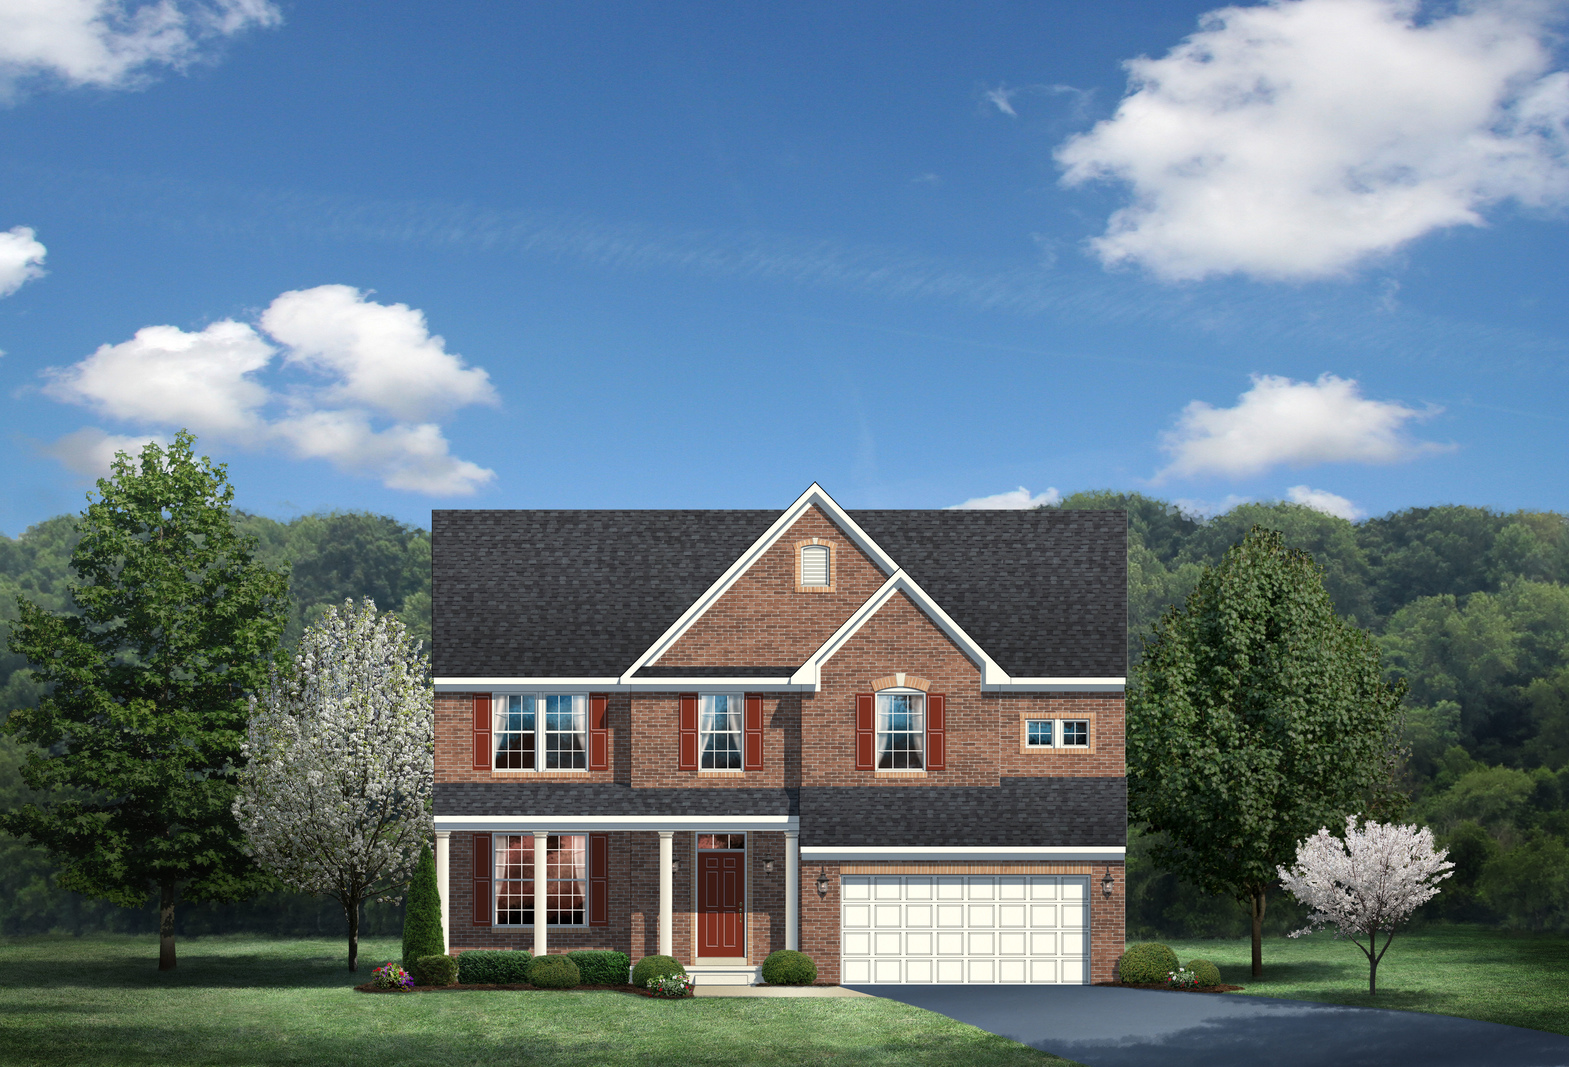 New dunkirk home model for sale heartland homes for Heartland house